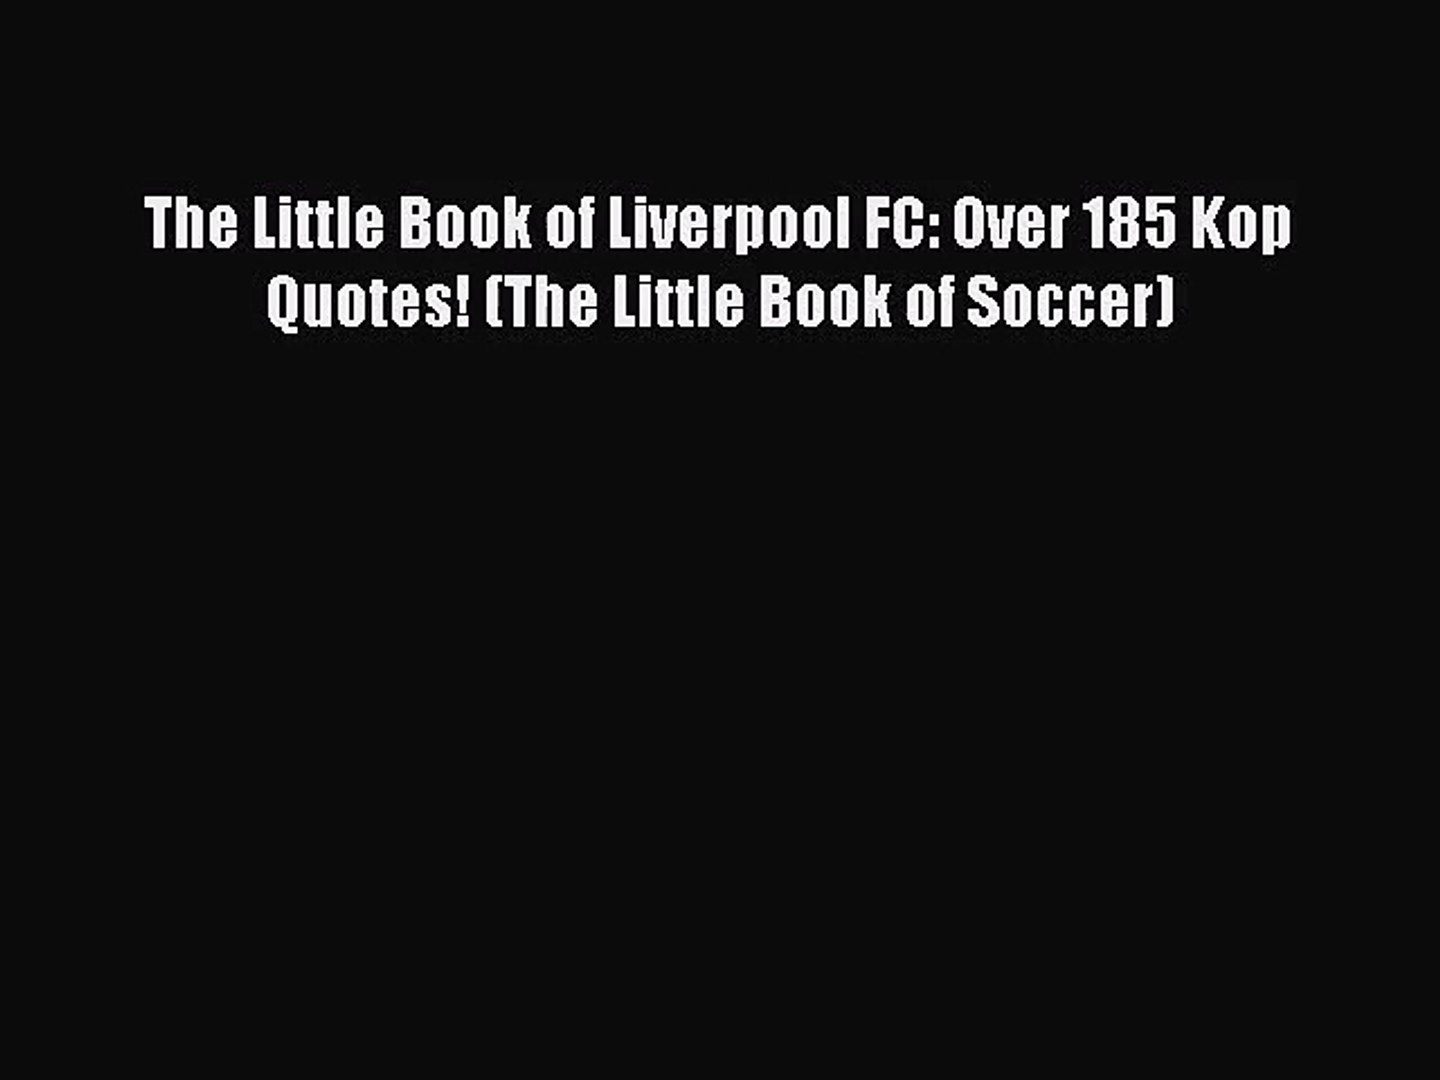 The Little Book of Liverpool FC: Over 185 Kop Quotes! (The Little Book of Soccer) [Read] Full